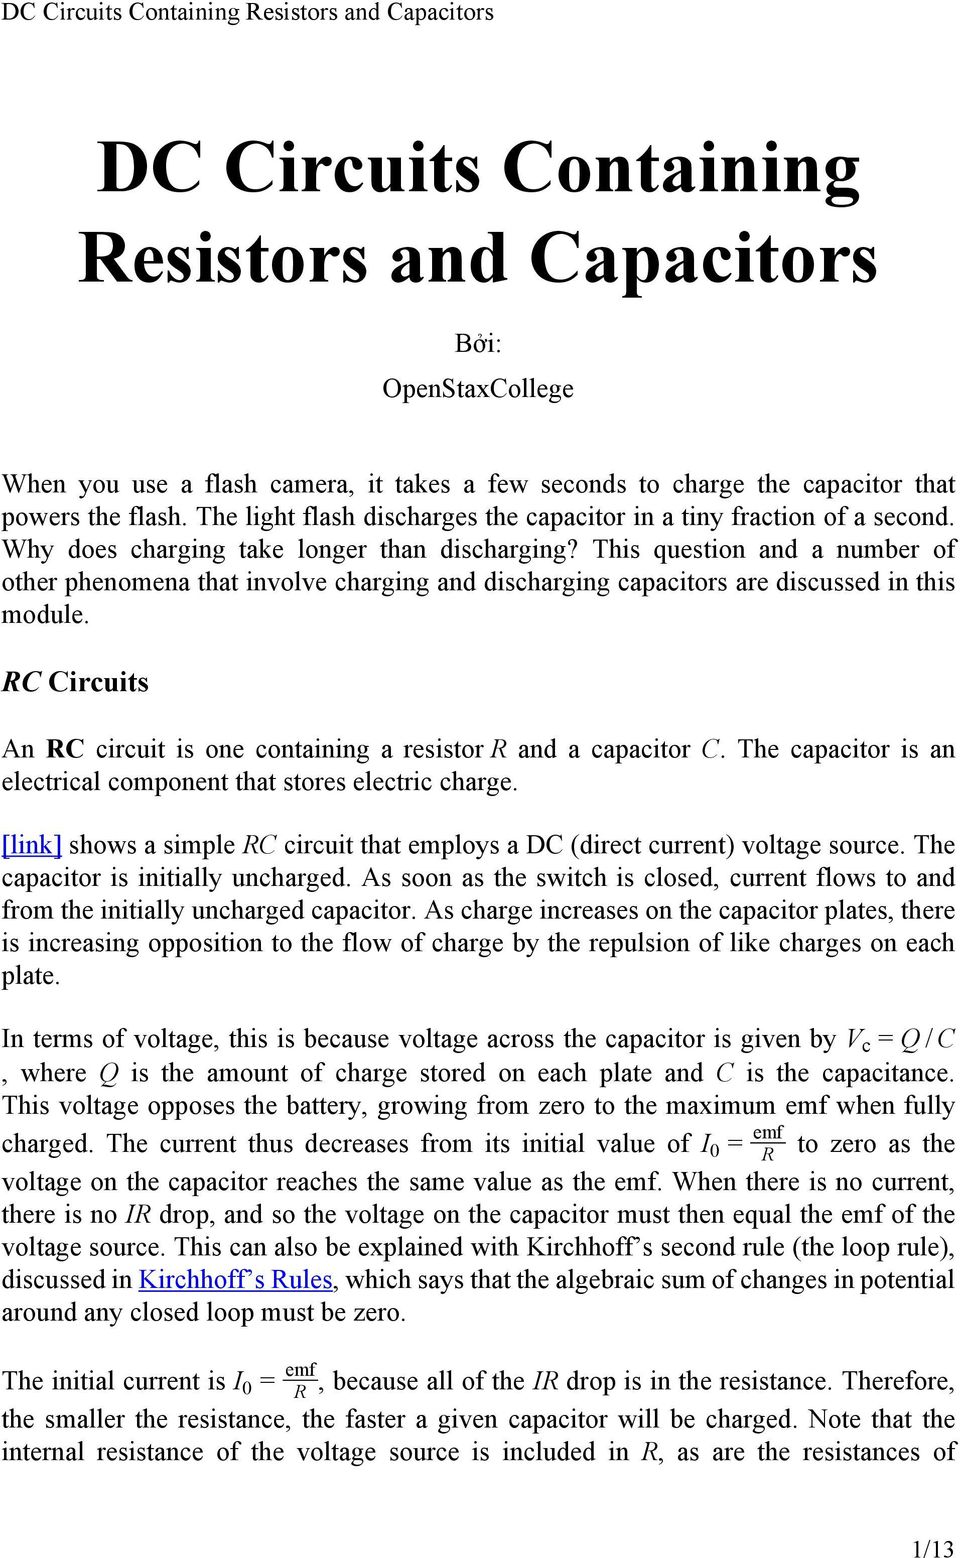 Dc Circuits Containing Resistors And Capacitors Pdf Simple Electric Electrical Circuit This Question A Number Of Other Phenomena That Involve Charging Discharging Are Discussed